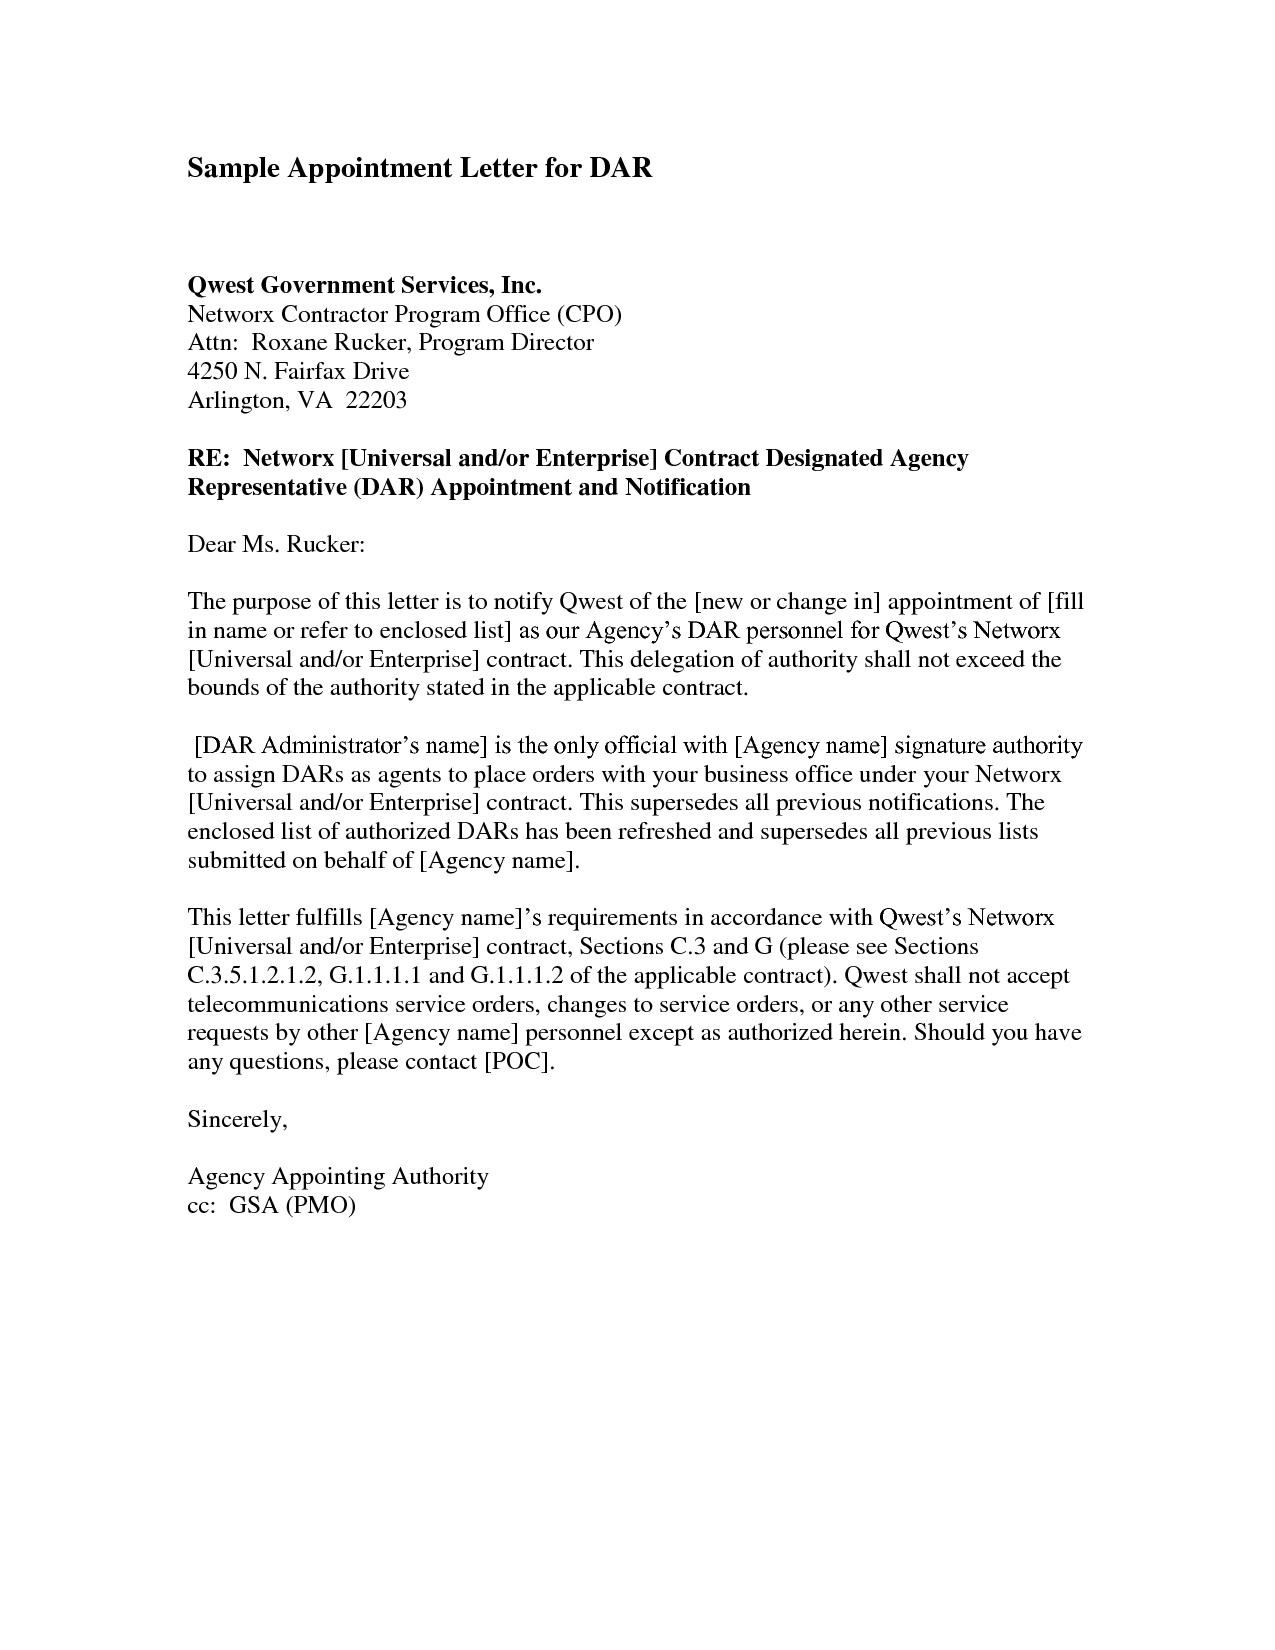 Demand for Payment Letter Template Free - Trustee Appointment Letter Director Trustee is Appointed or